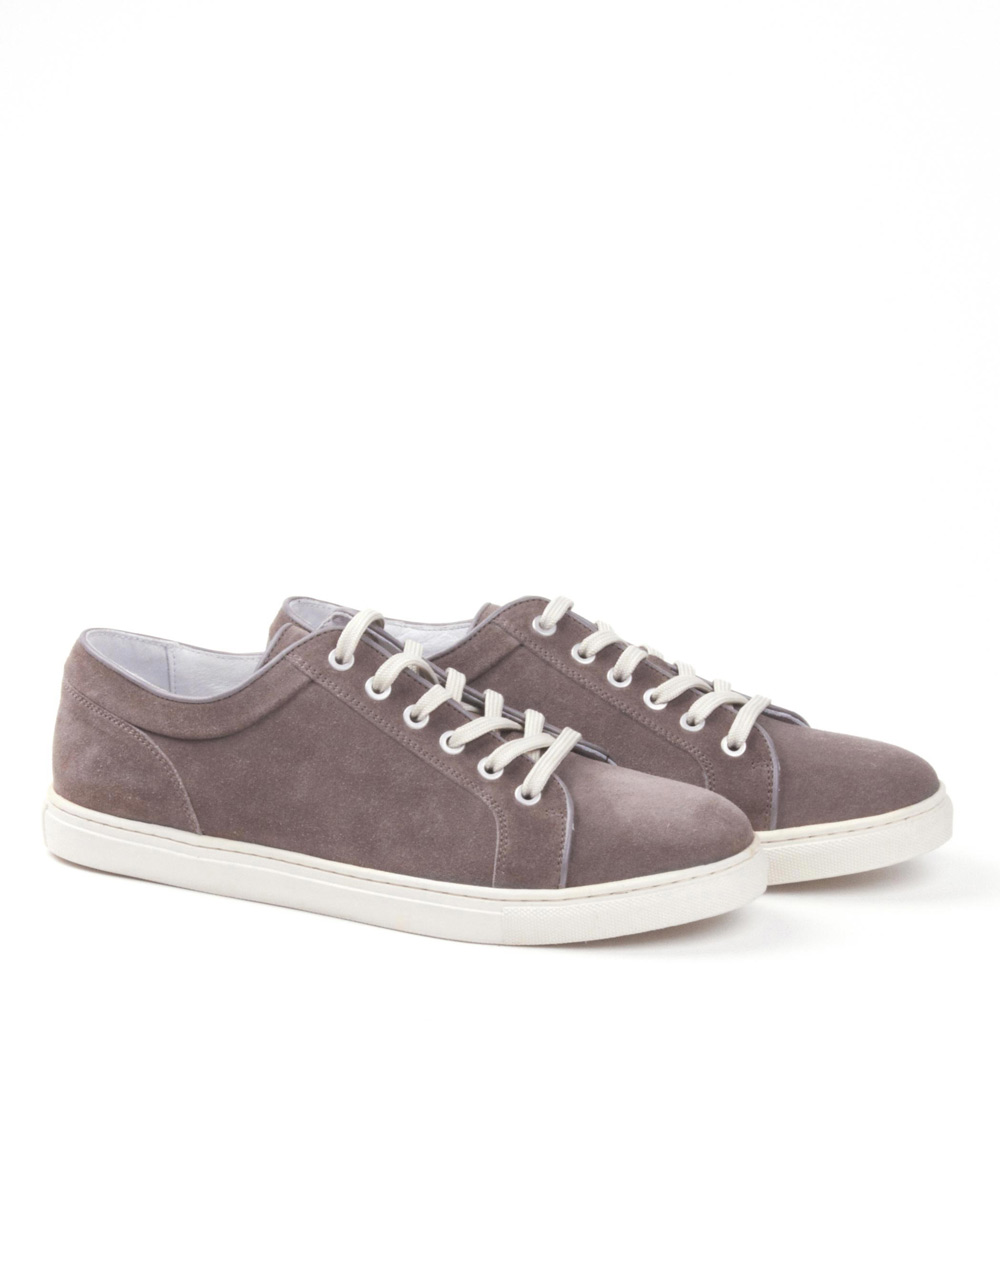 Taupe suede sports